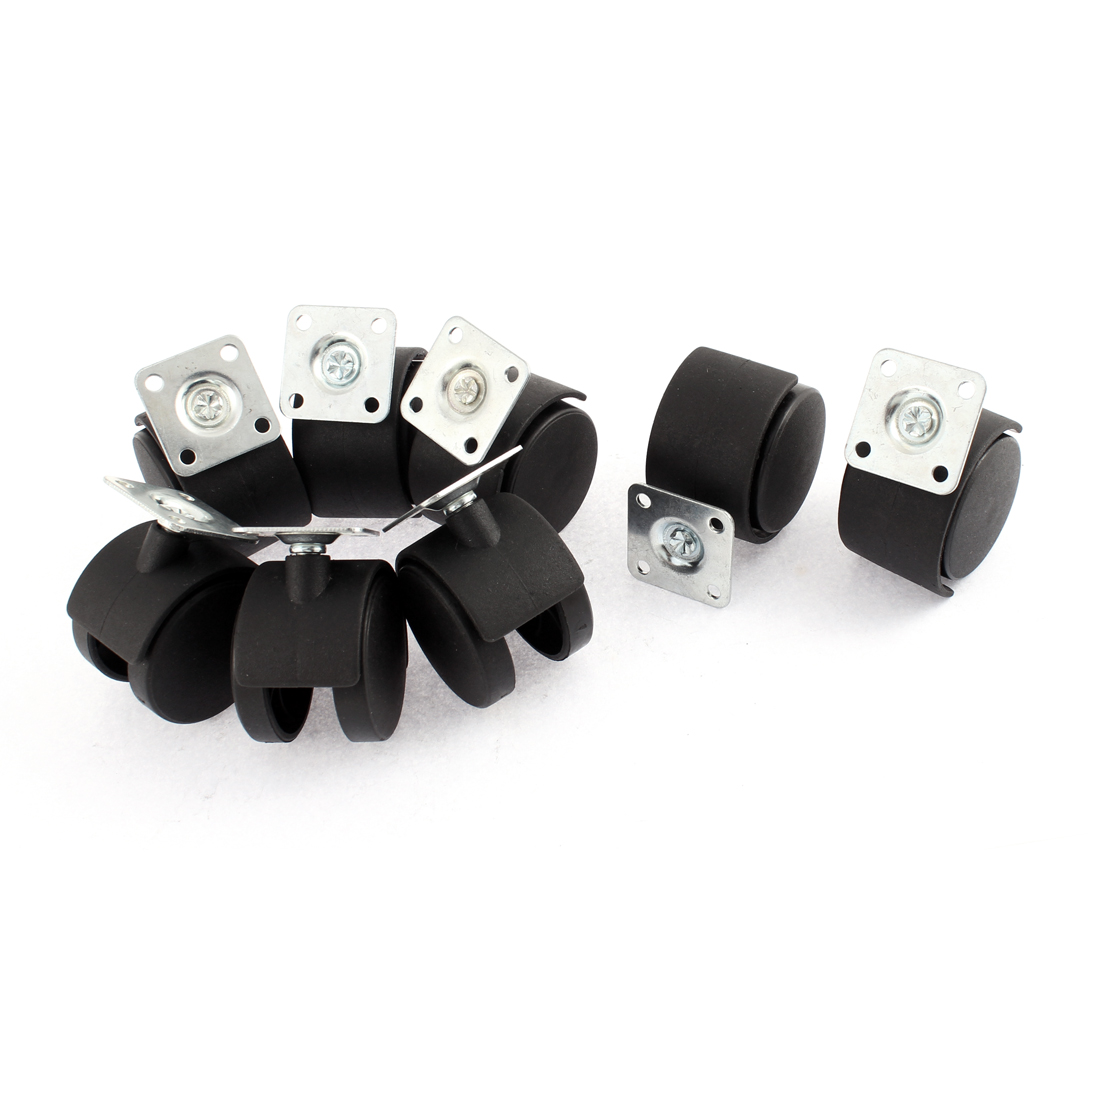 Office Chair 2 Inch Dia Wheel Square Plate Mount Swivel Caster 8 Pcs